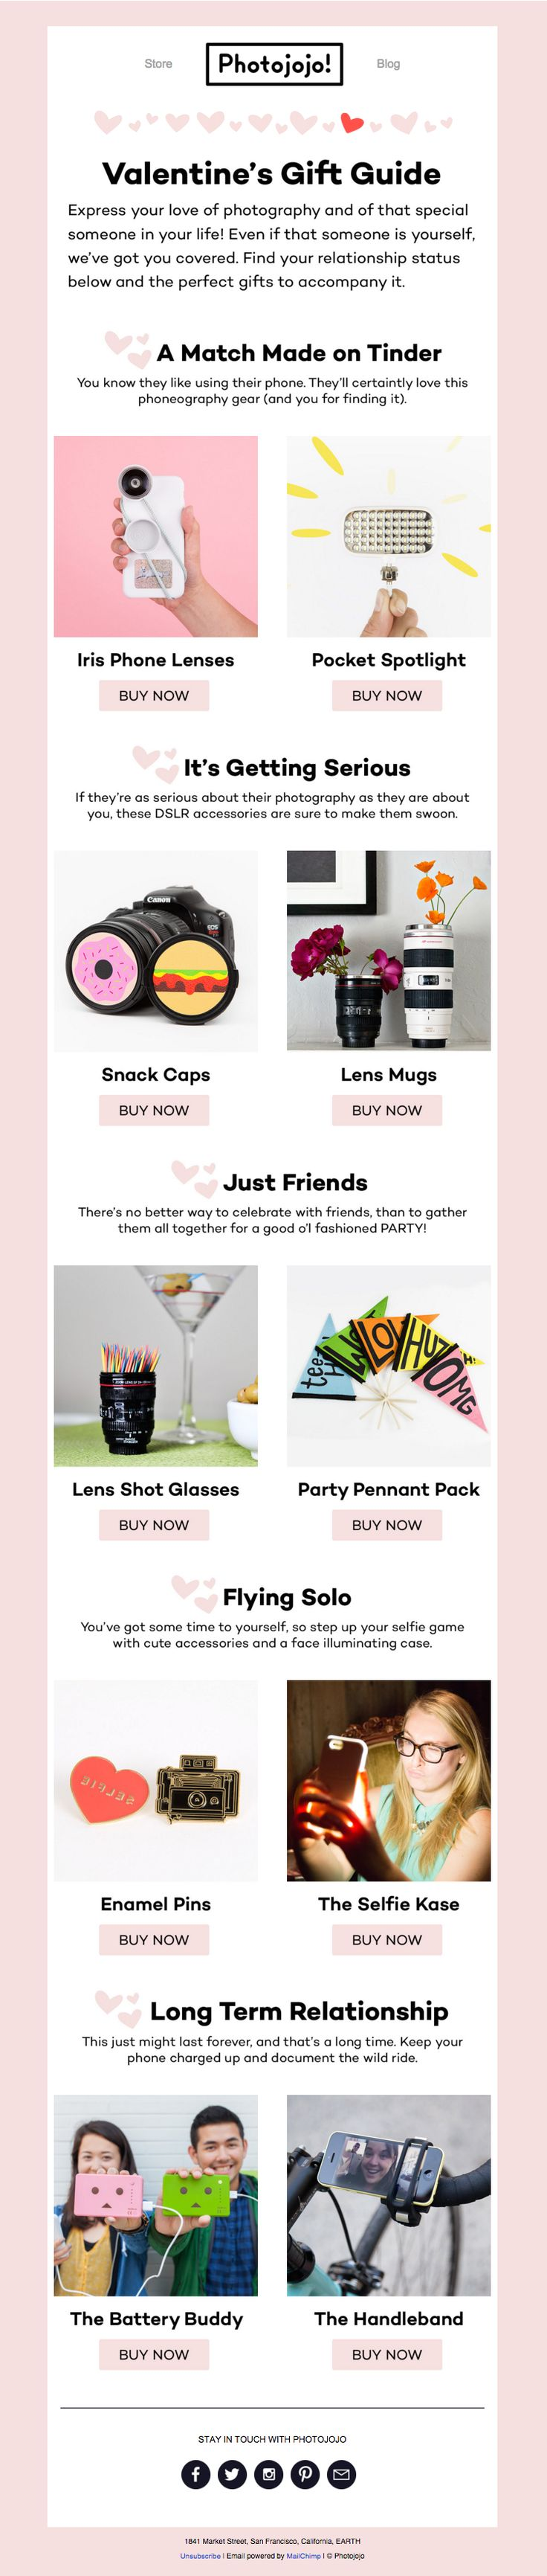 Well-designed Valentine's Day email from Photojojo - nice design on a grid! See more great Valentine's Day emails here: http://emaildesign.beefree.io/2016/02/inspiration-for-valentines-day-emails/